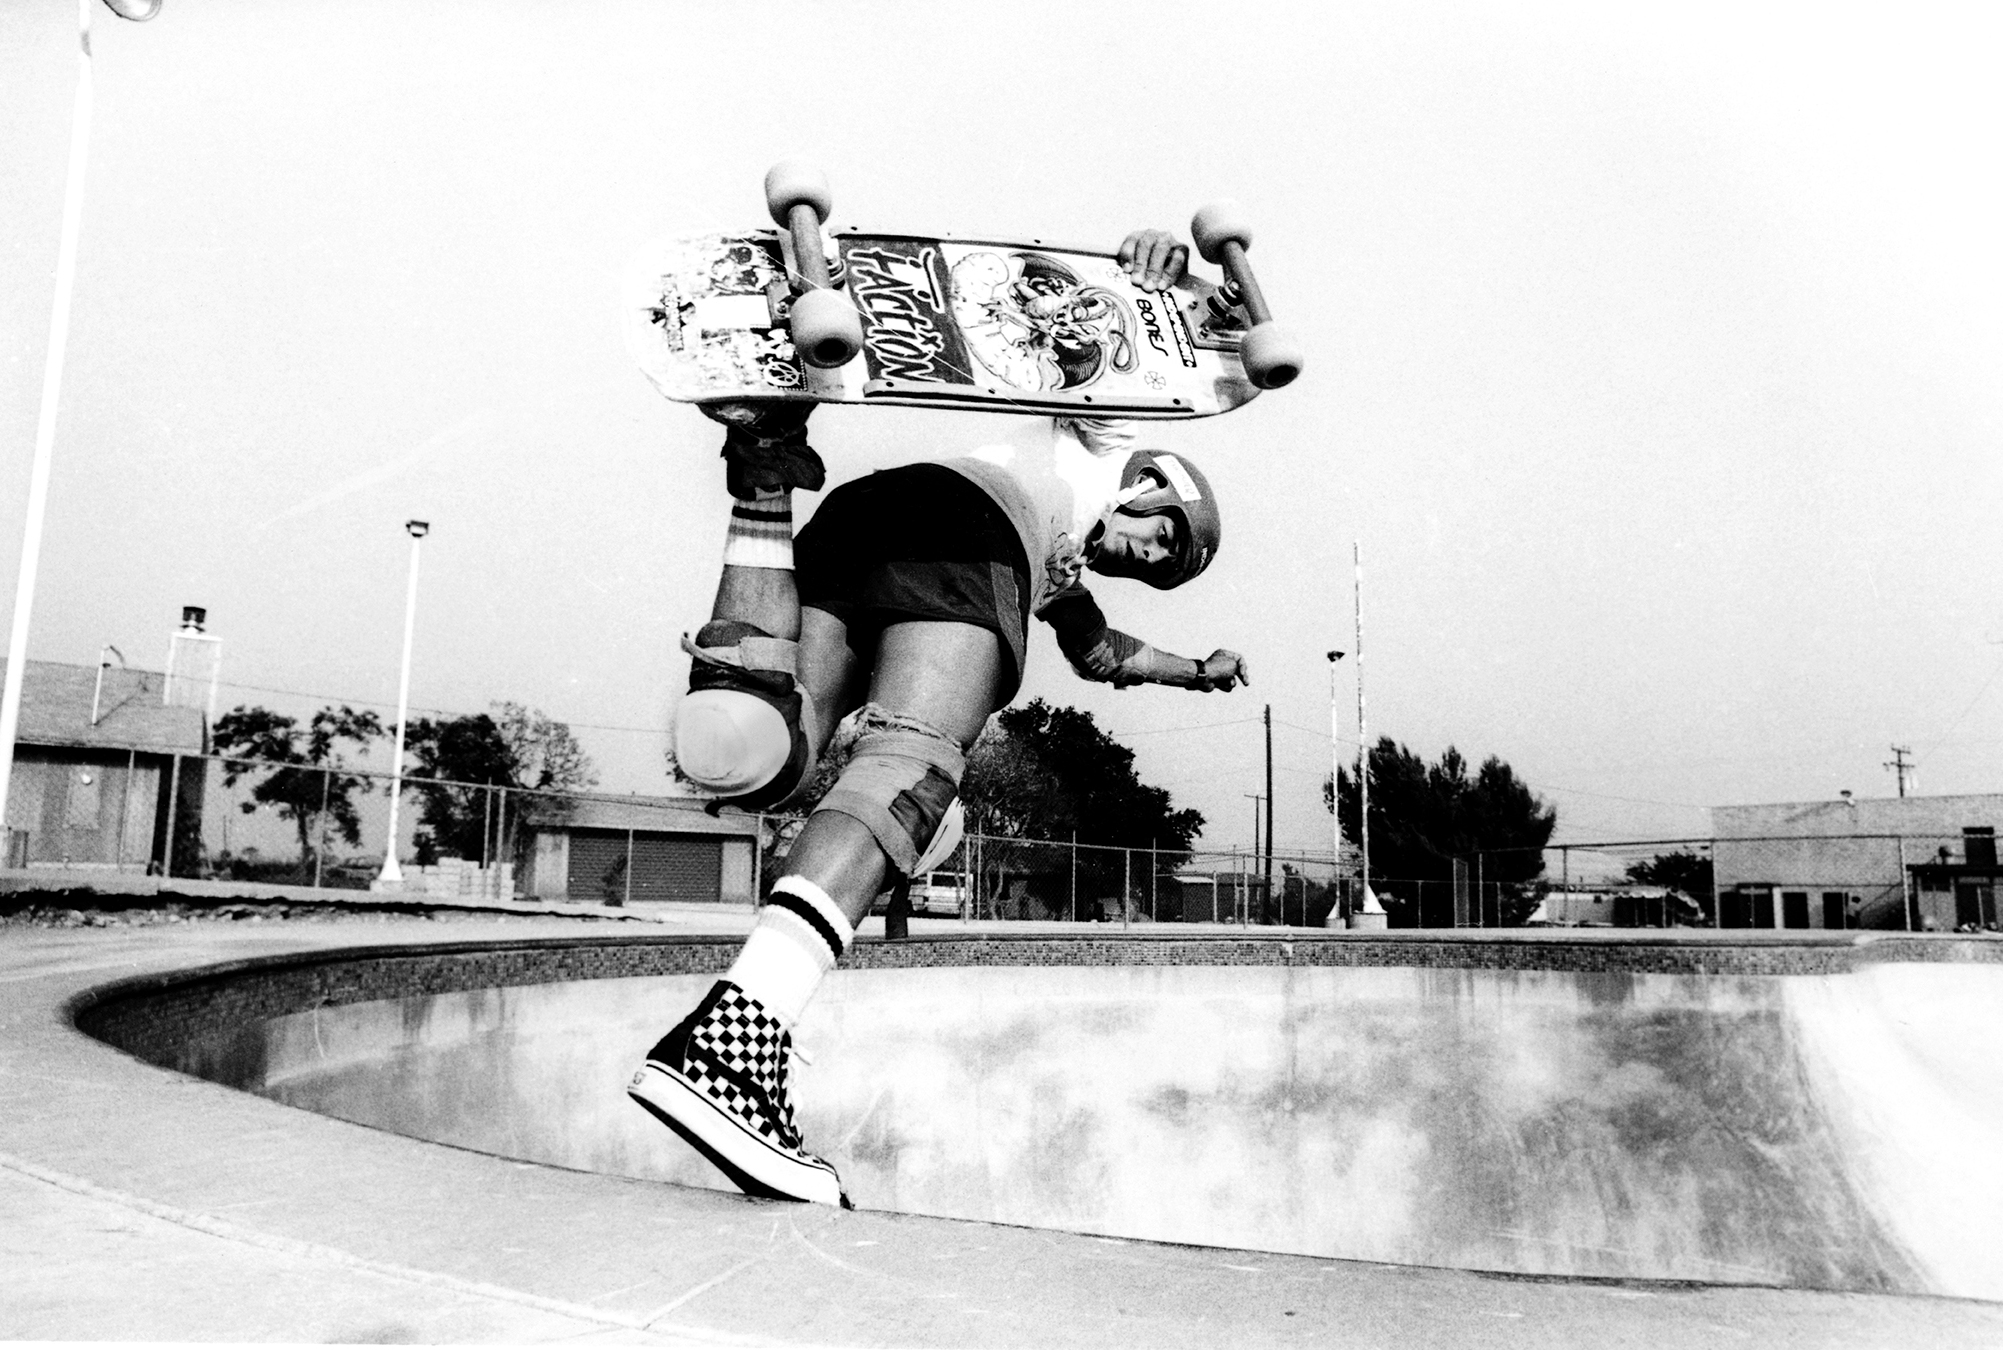 Professional skater Steve Caballero skates wearing a pair of Vans checkerboard high tops in 1984.